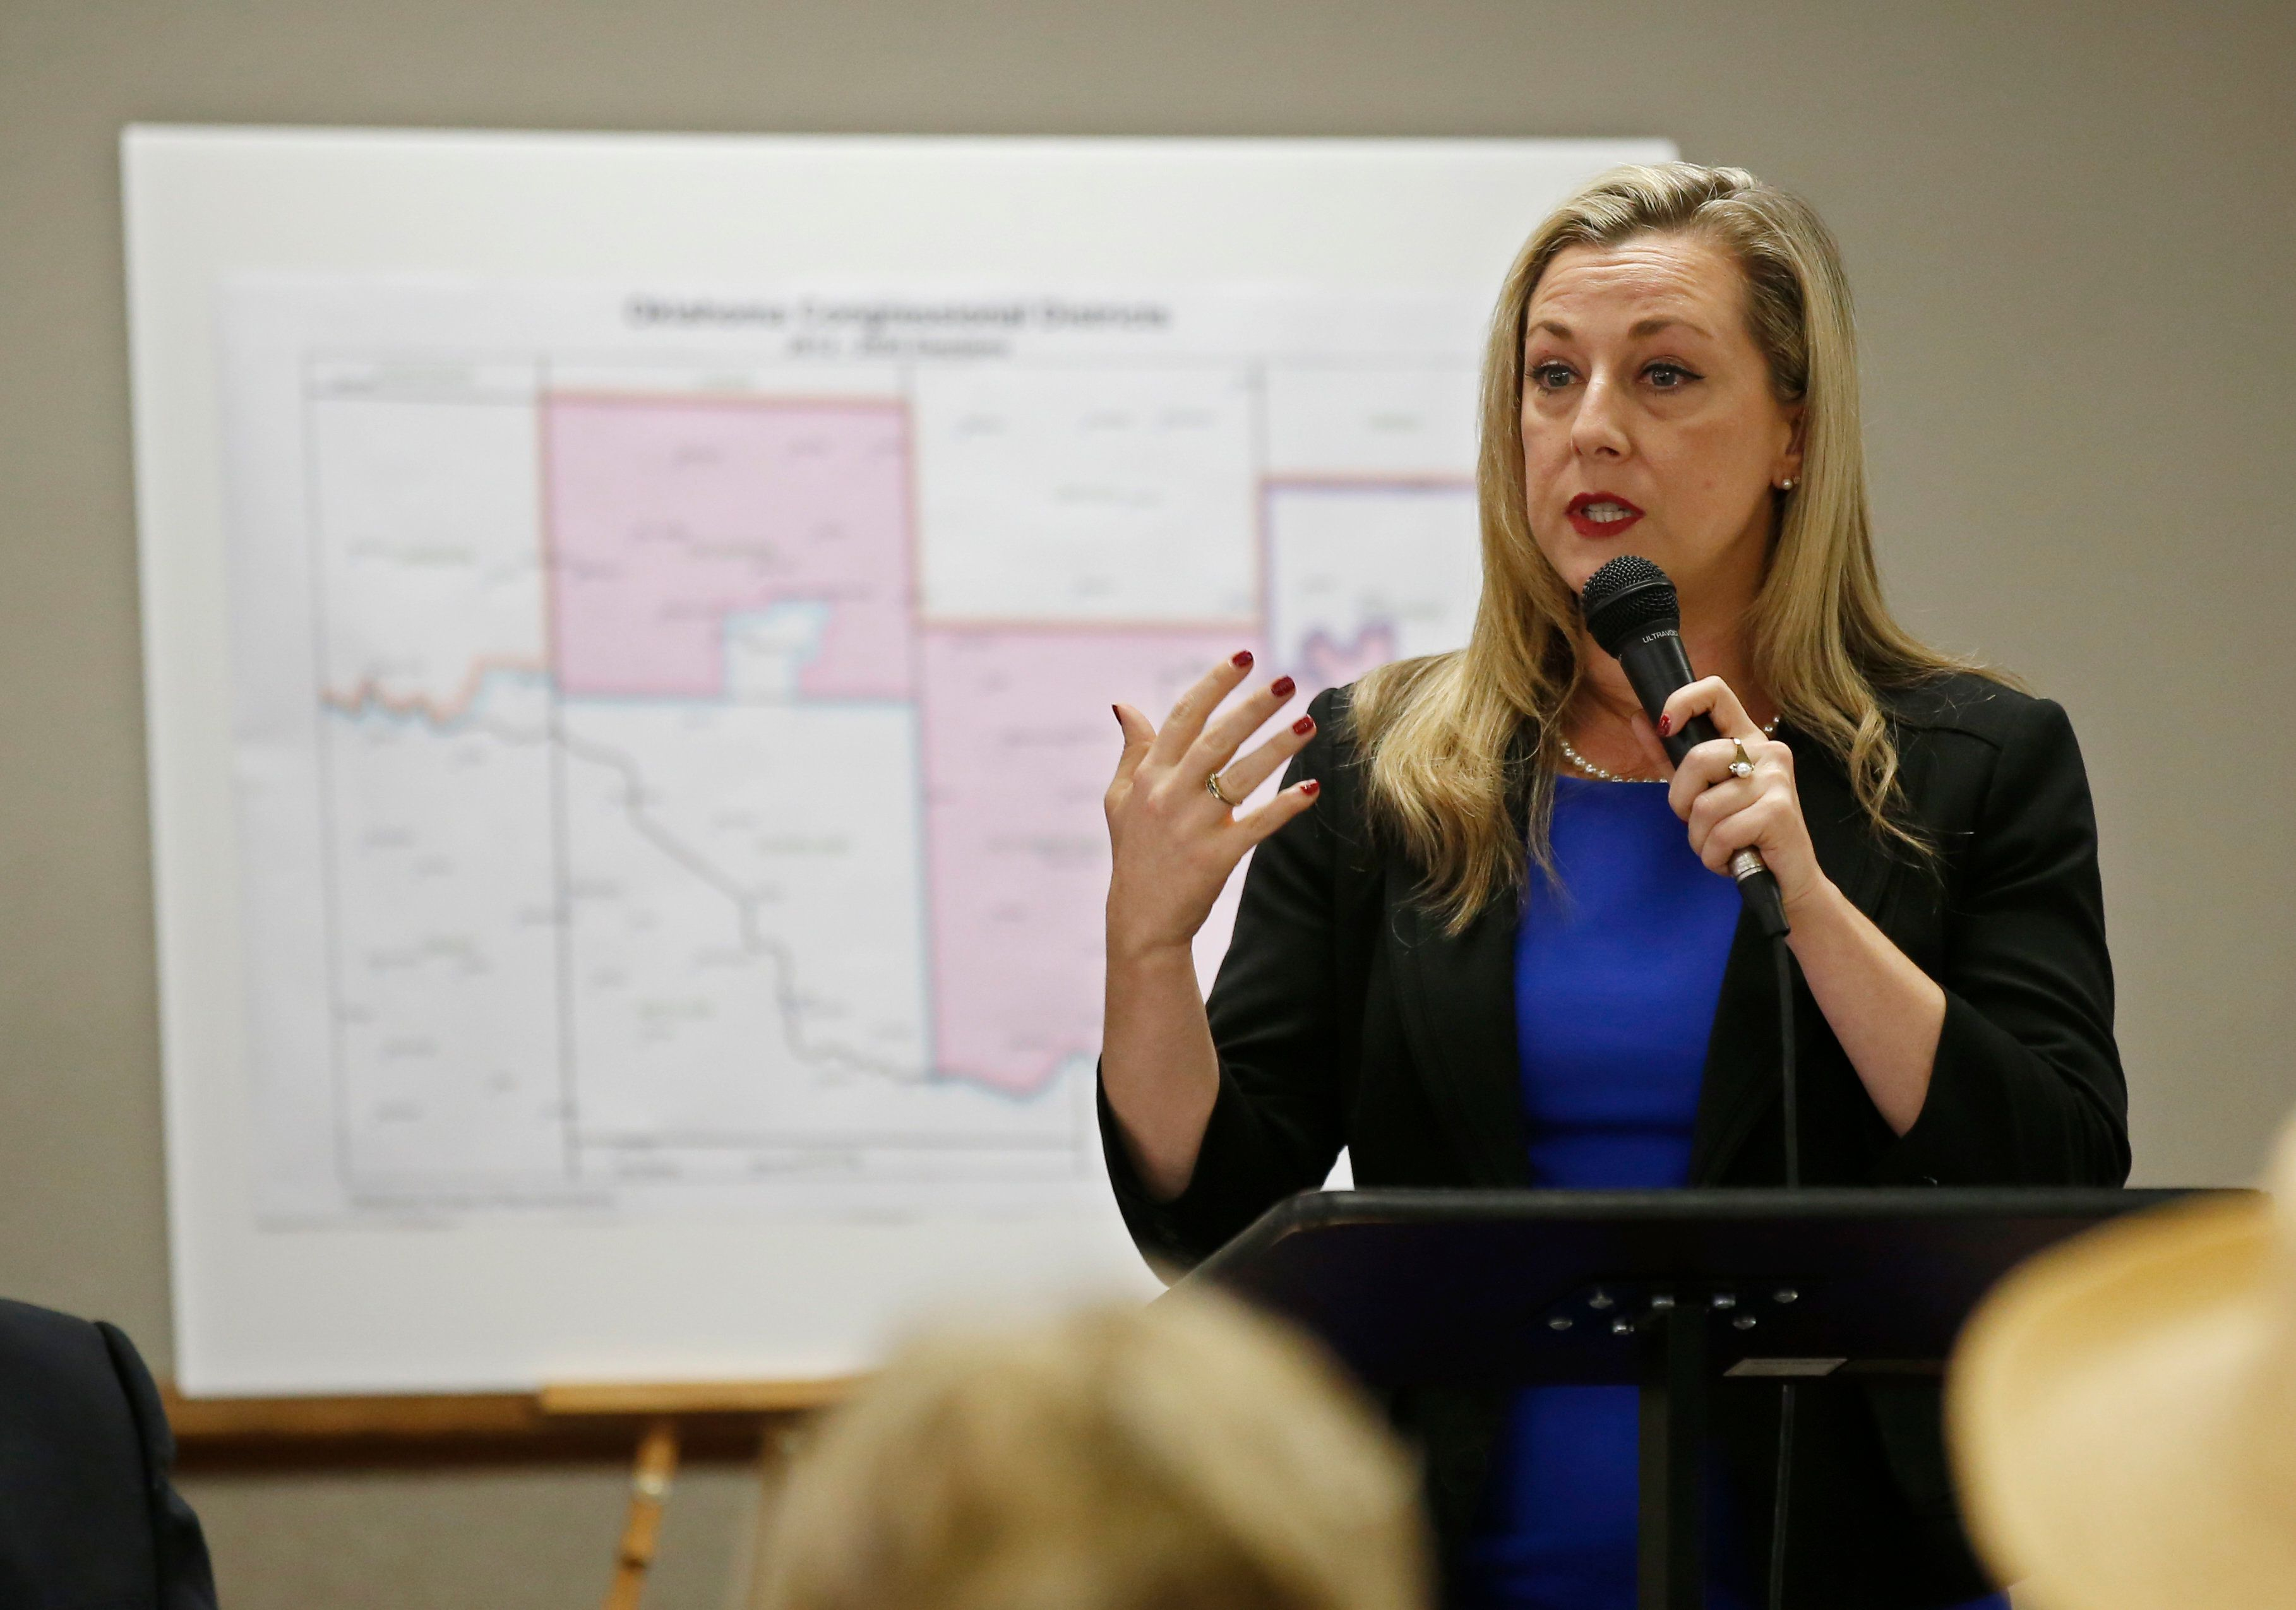 FILE - In this May 10, 2018 file photo, Kendra Horn speaks during a forum for Oklahoma 5th congressional district seat Democratic candidates in Edmond, Okla. Horn is facing incumbent Republican Rep. Steve Russell. (AP Photo/Sue Ogrocki, File)